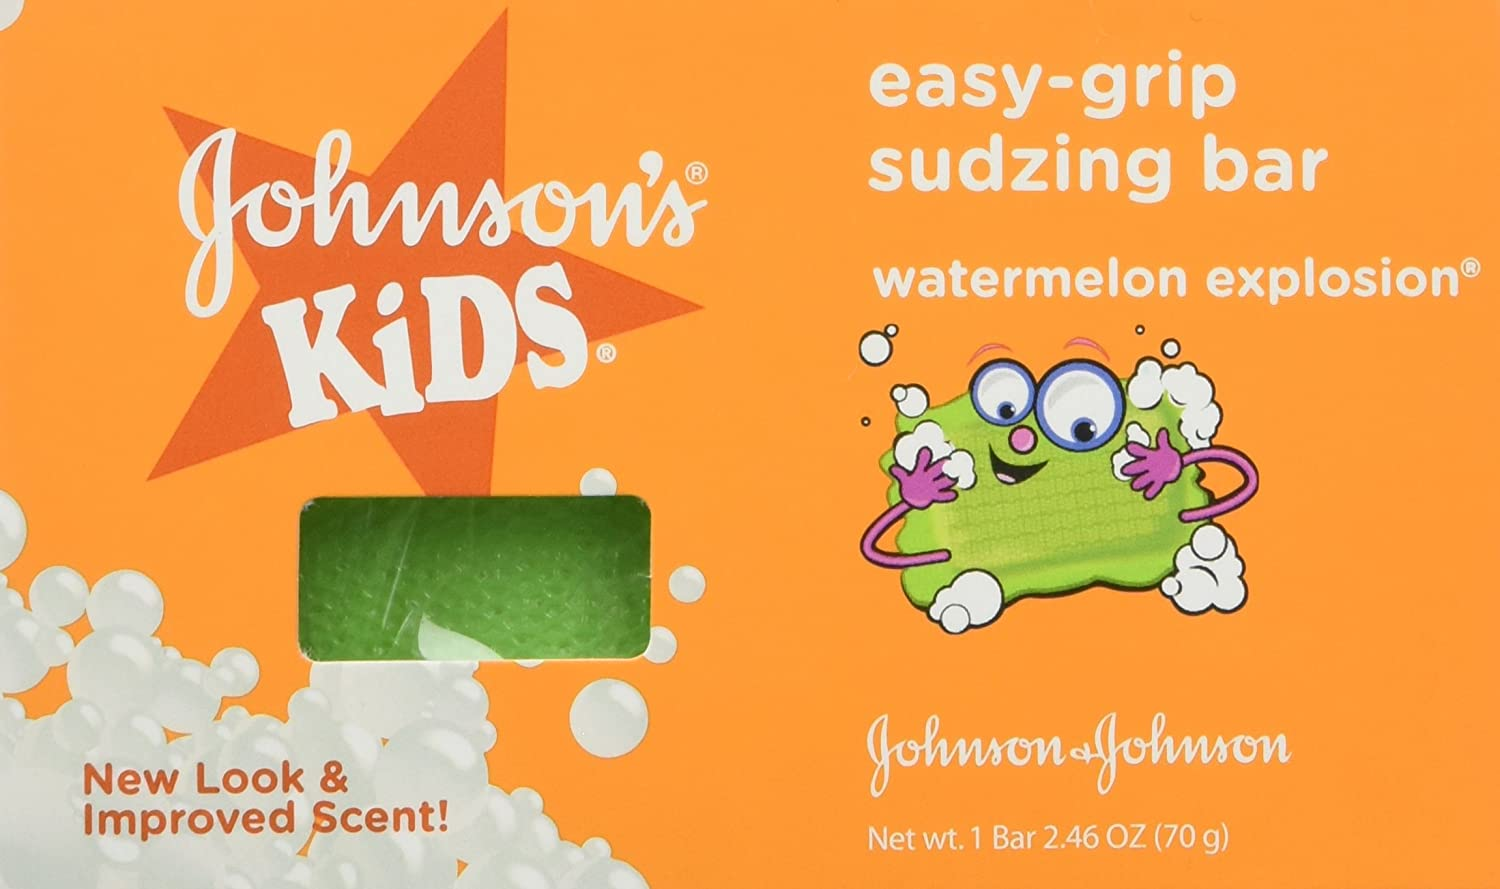 Johnson & Johnson, Johnsons Kids Easy-grip Sudzing Bar Watermelon Explosion 2.46 Oz , 2 Count